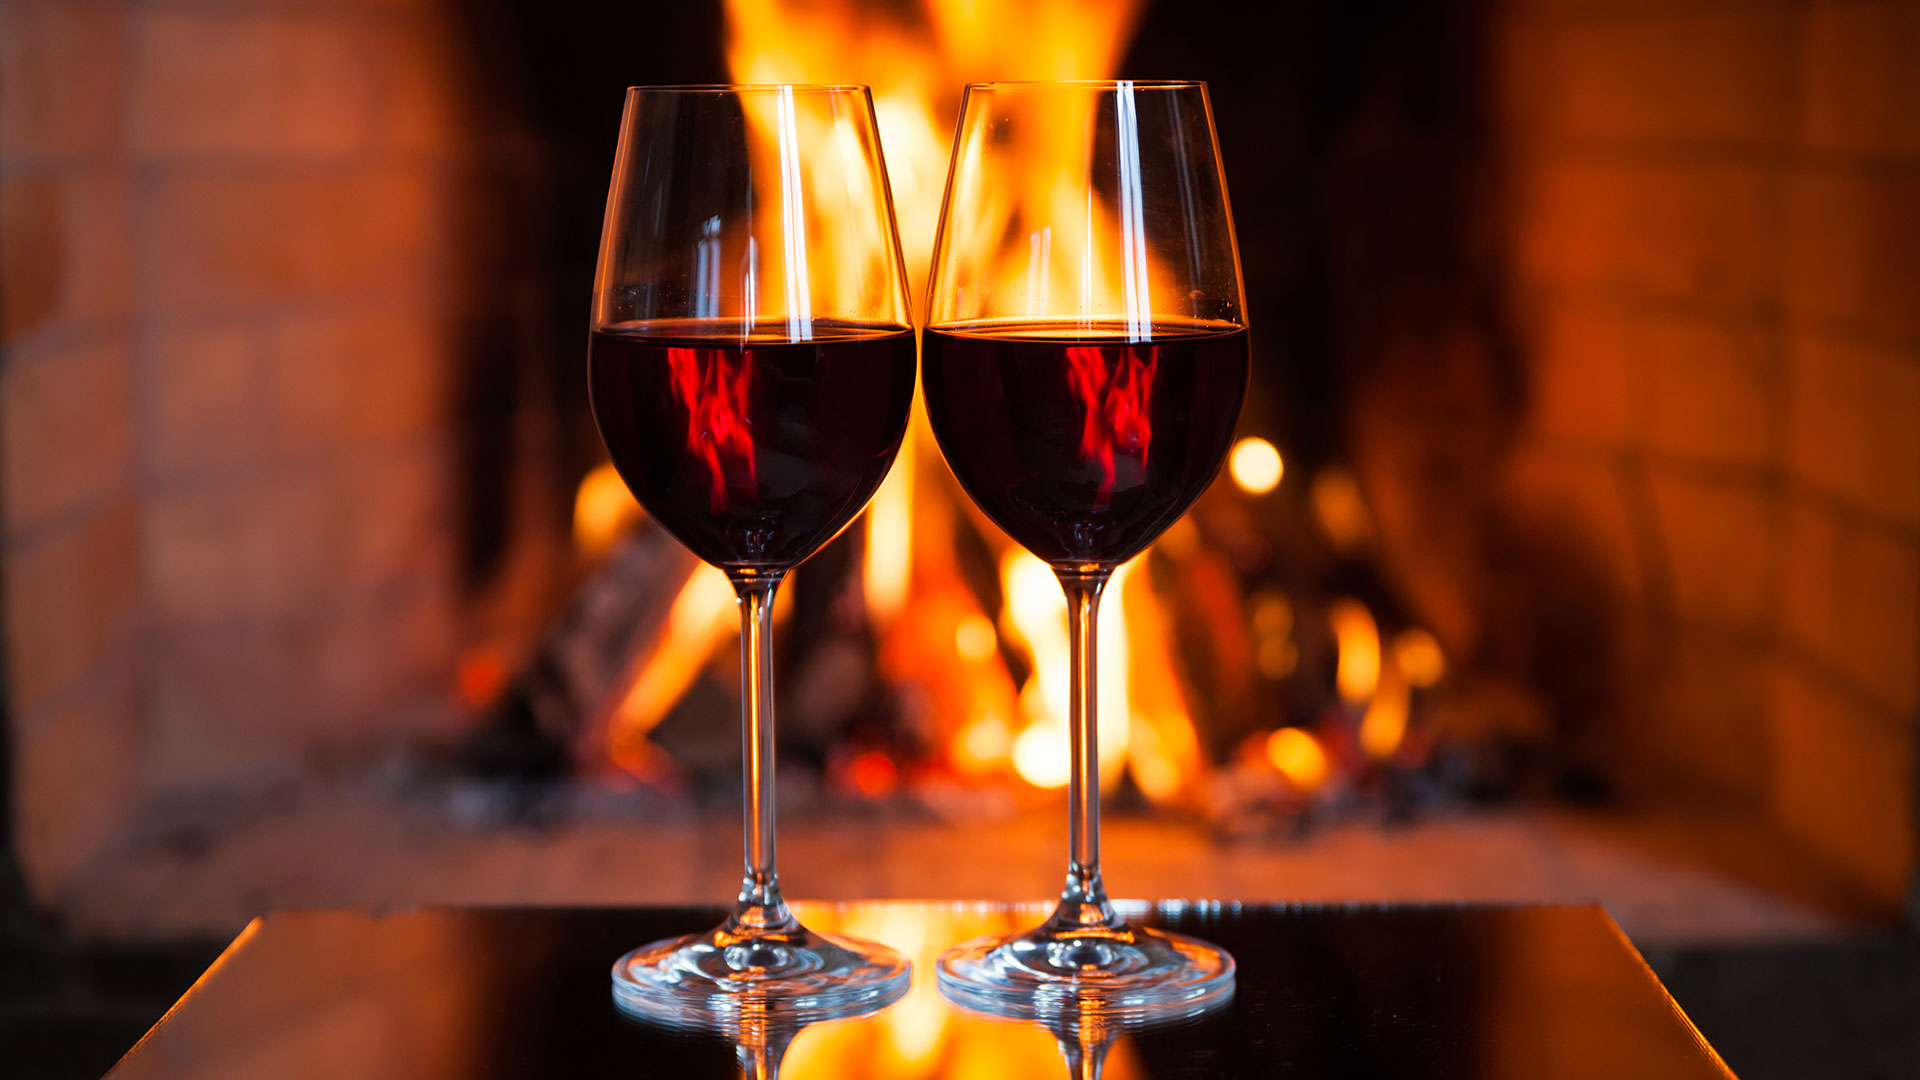 Why You Find Yourself Reaching for the Wine More When It's Cold Out